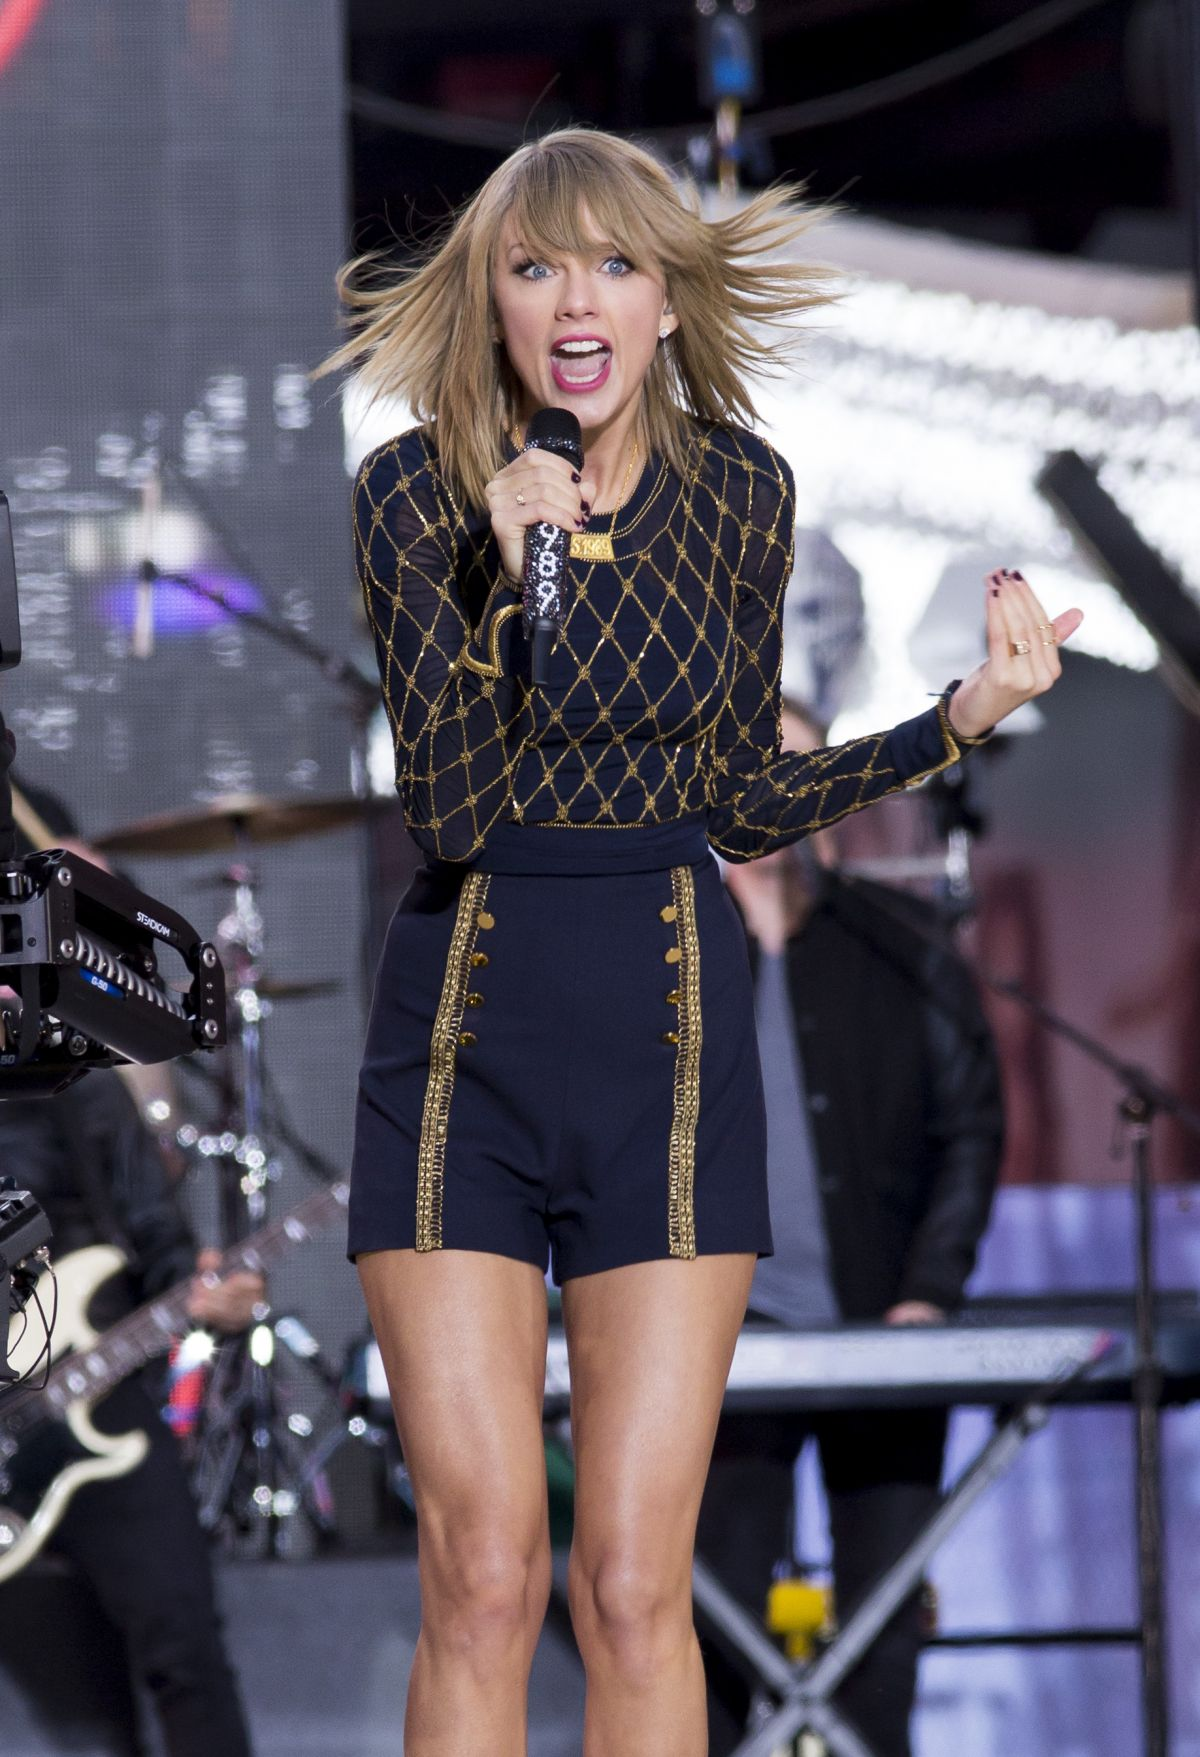 Good Morning America Performances : Taylor swift performing in concert at good morning